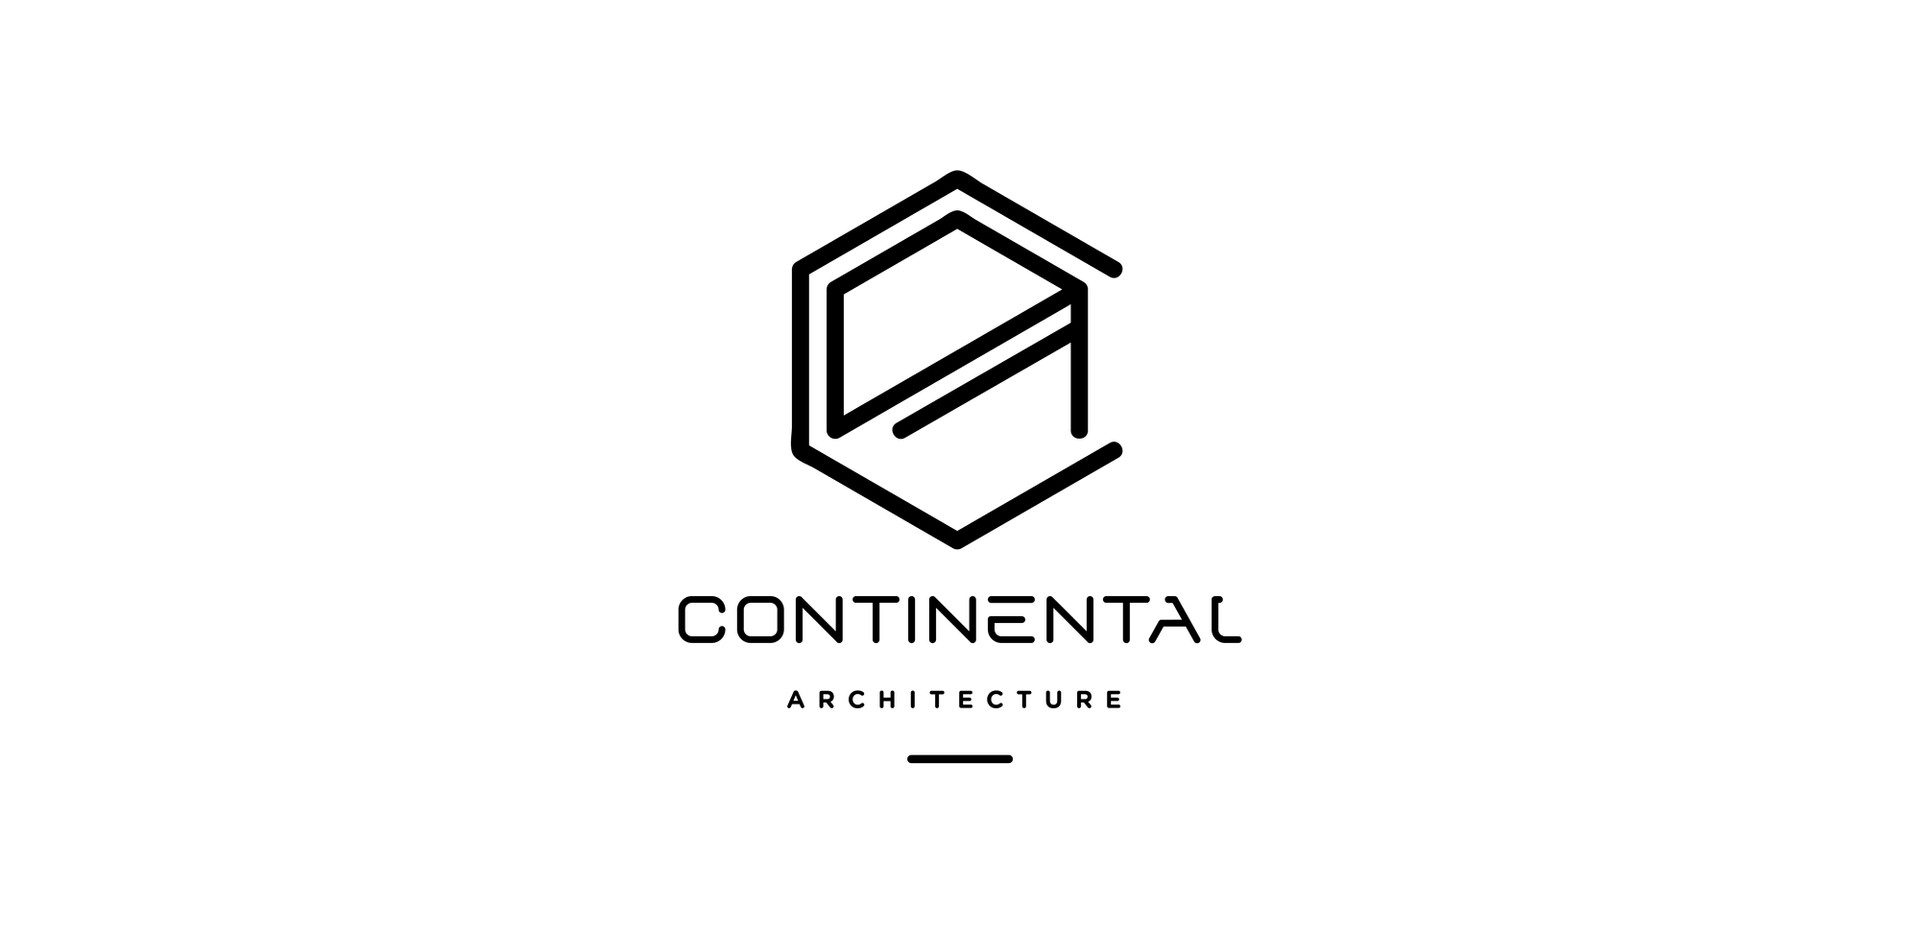 Contnental Arch Expanded-01.jpg